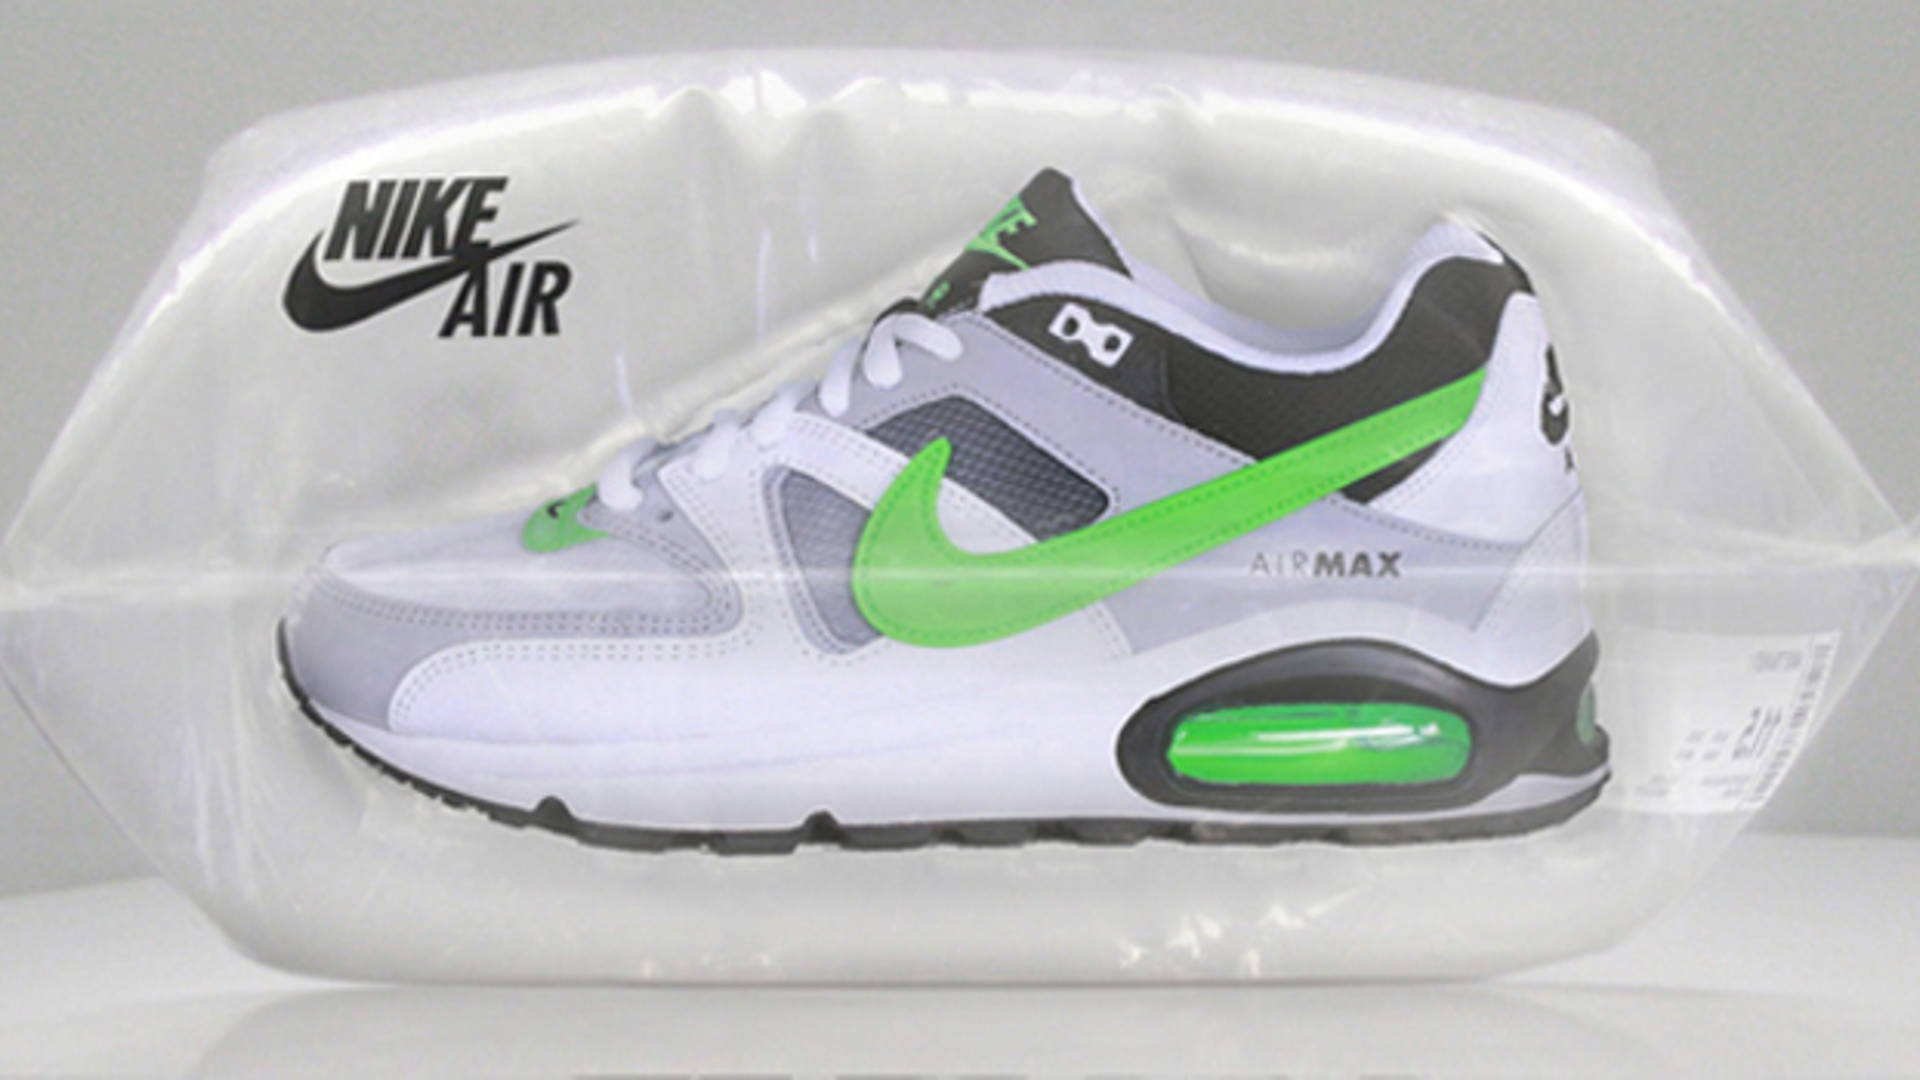 Nike Air shoes product Packaging